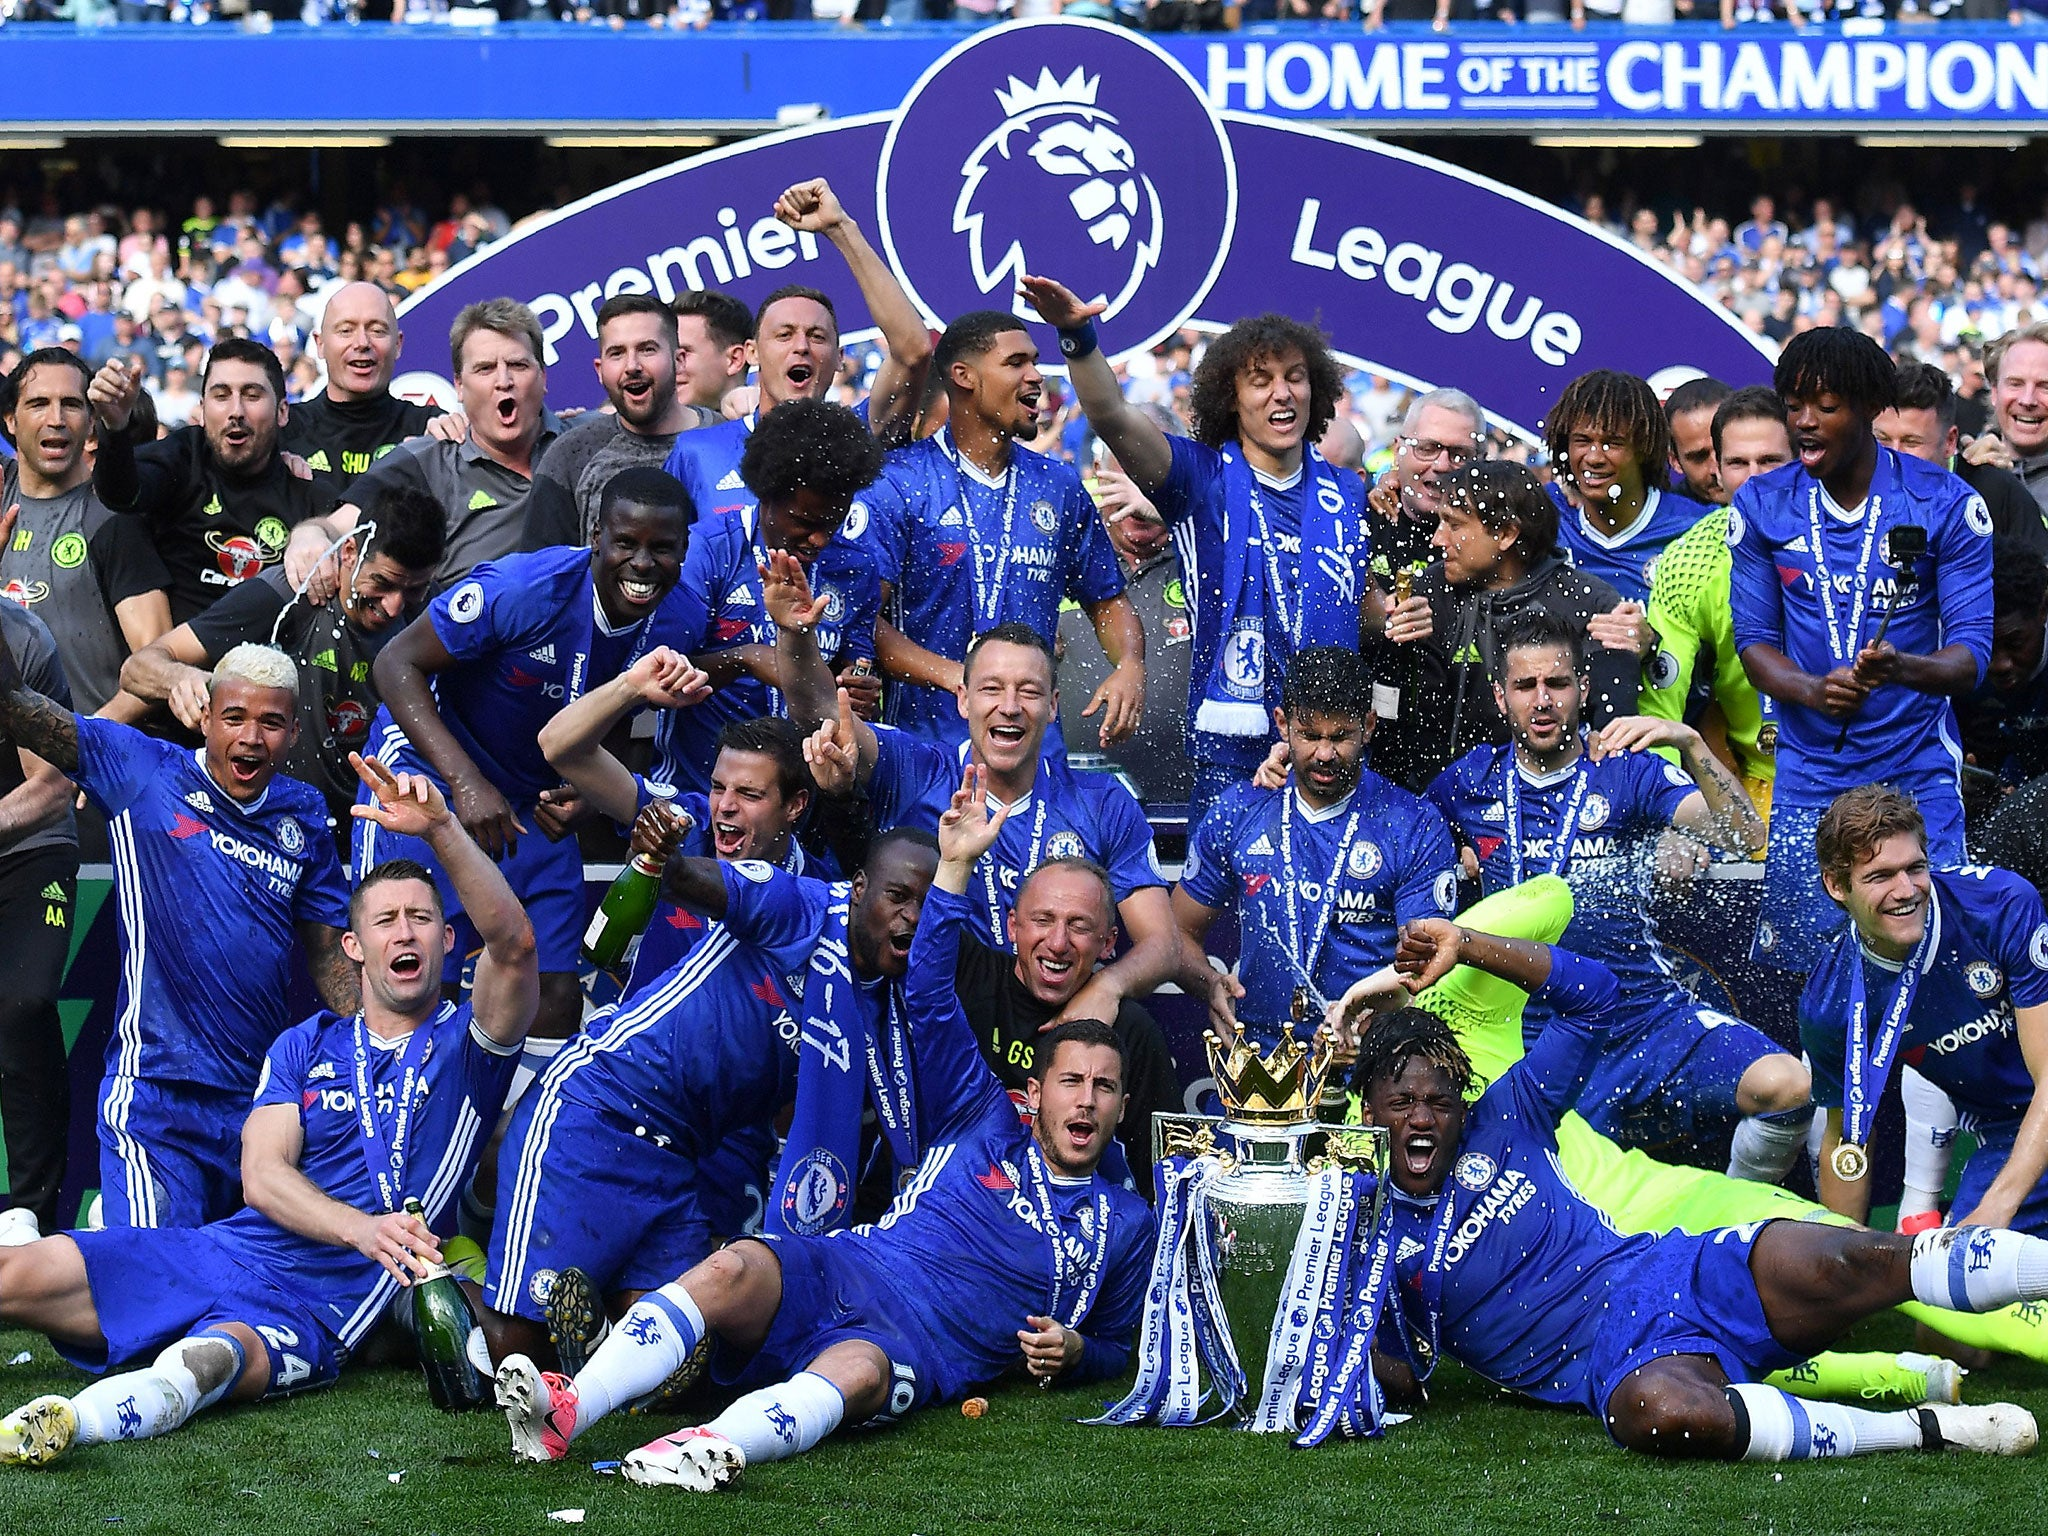 City Chelsea: Premier League 2017/18 Fixtures: The Full Schedule For The